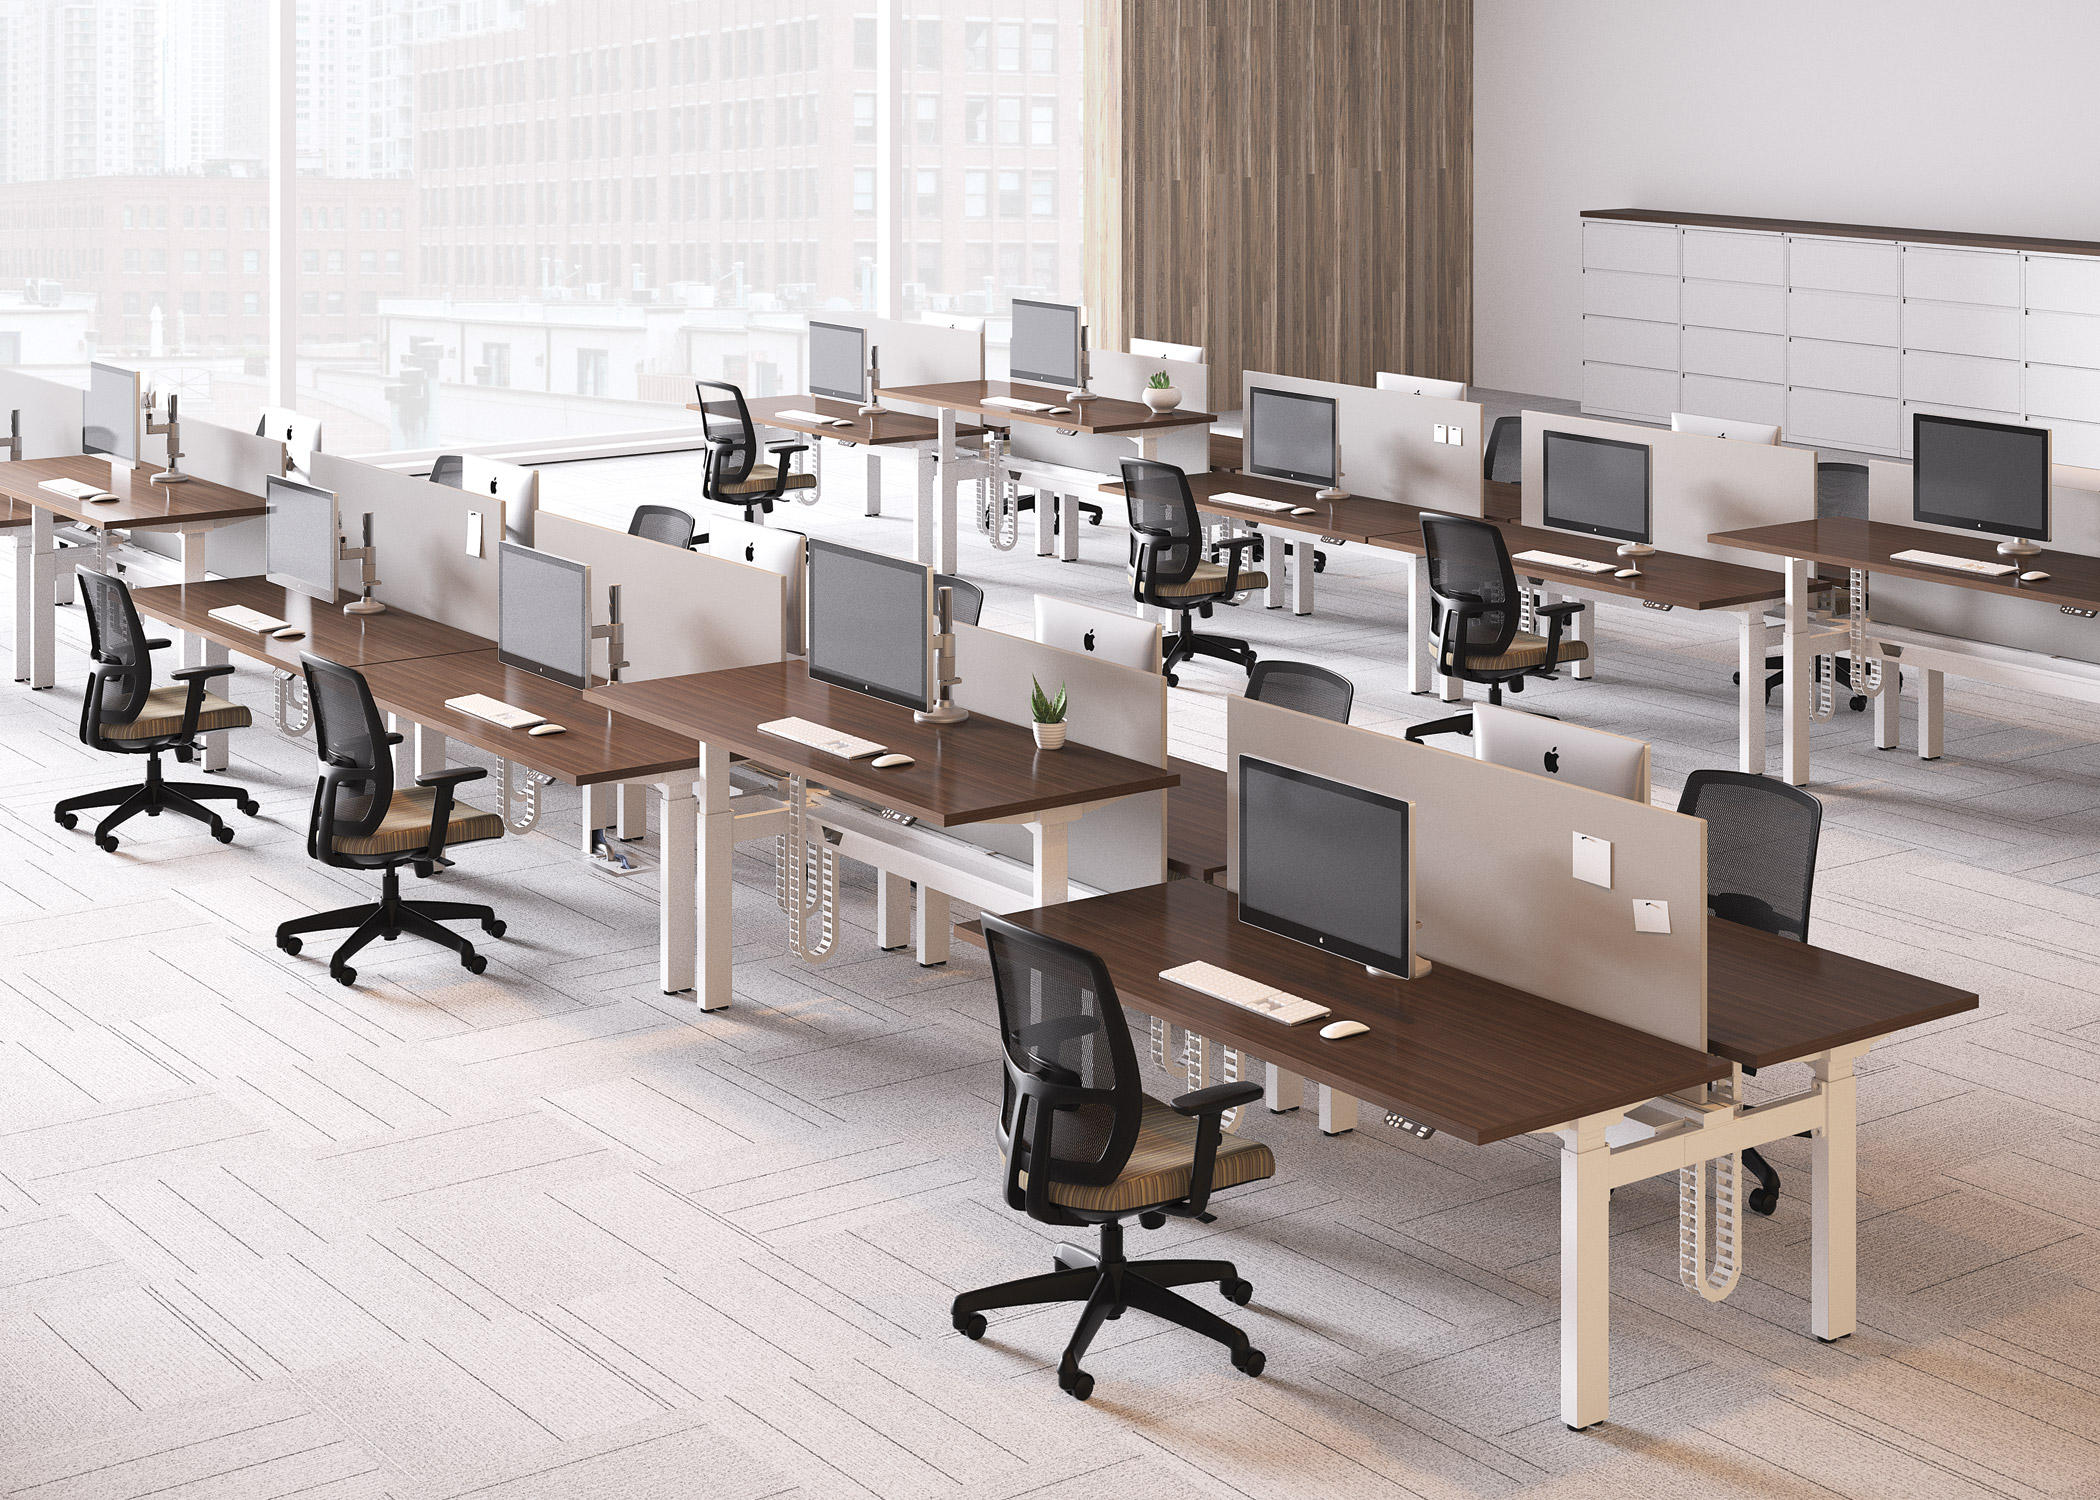 alloy desk - contract tables from national office furniture